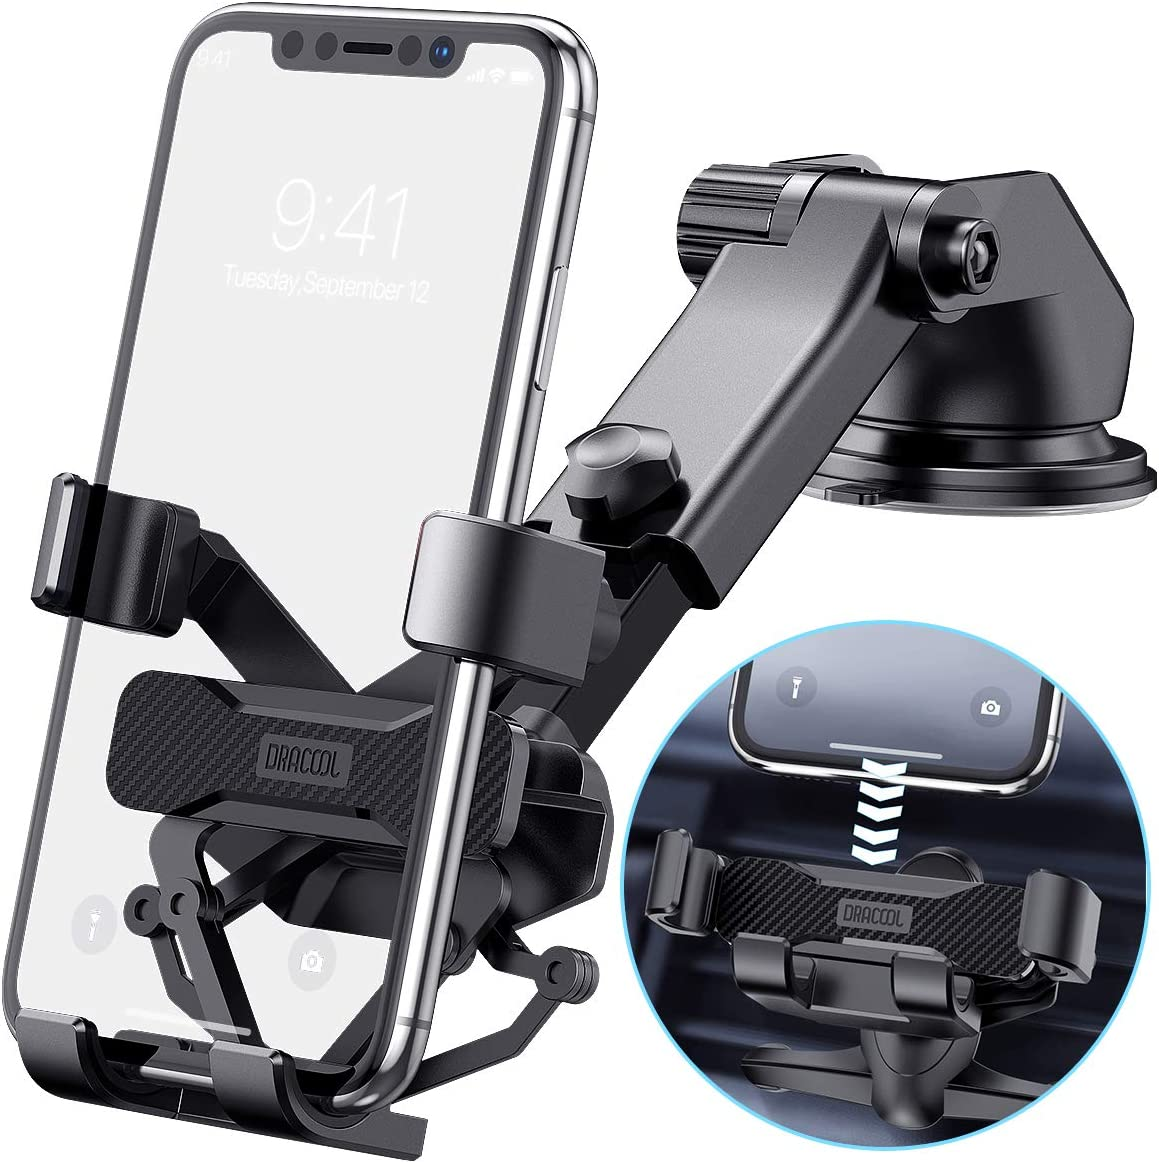 Dracool Car Phone Holder Mount 3-in-1 Translated Cell Gravity Max 82% OFF f